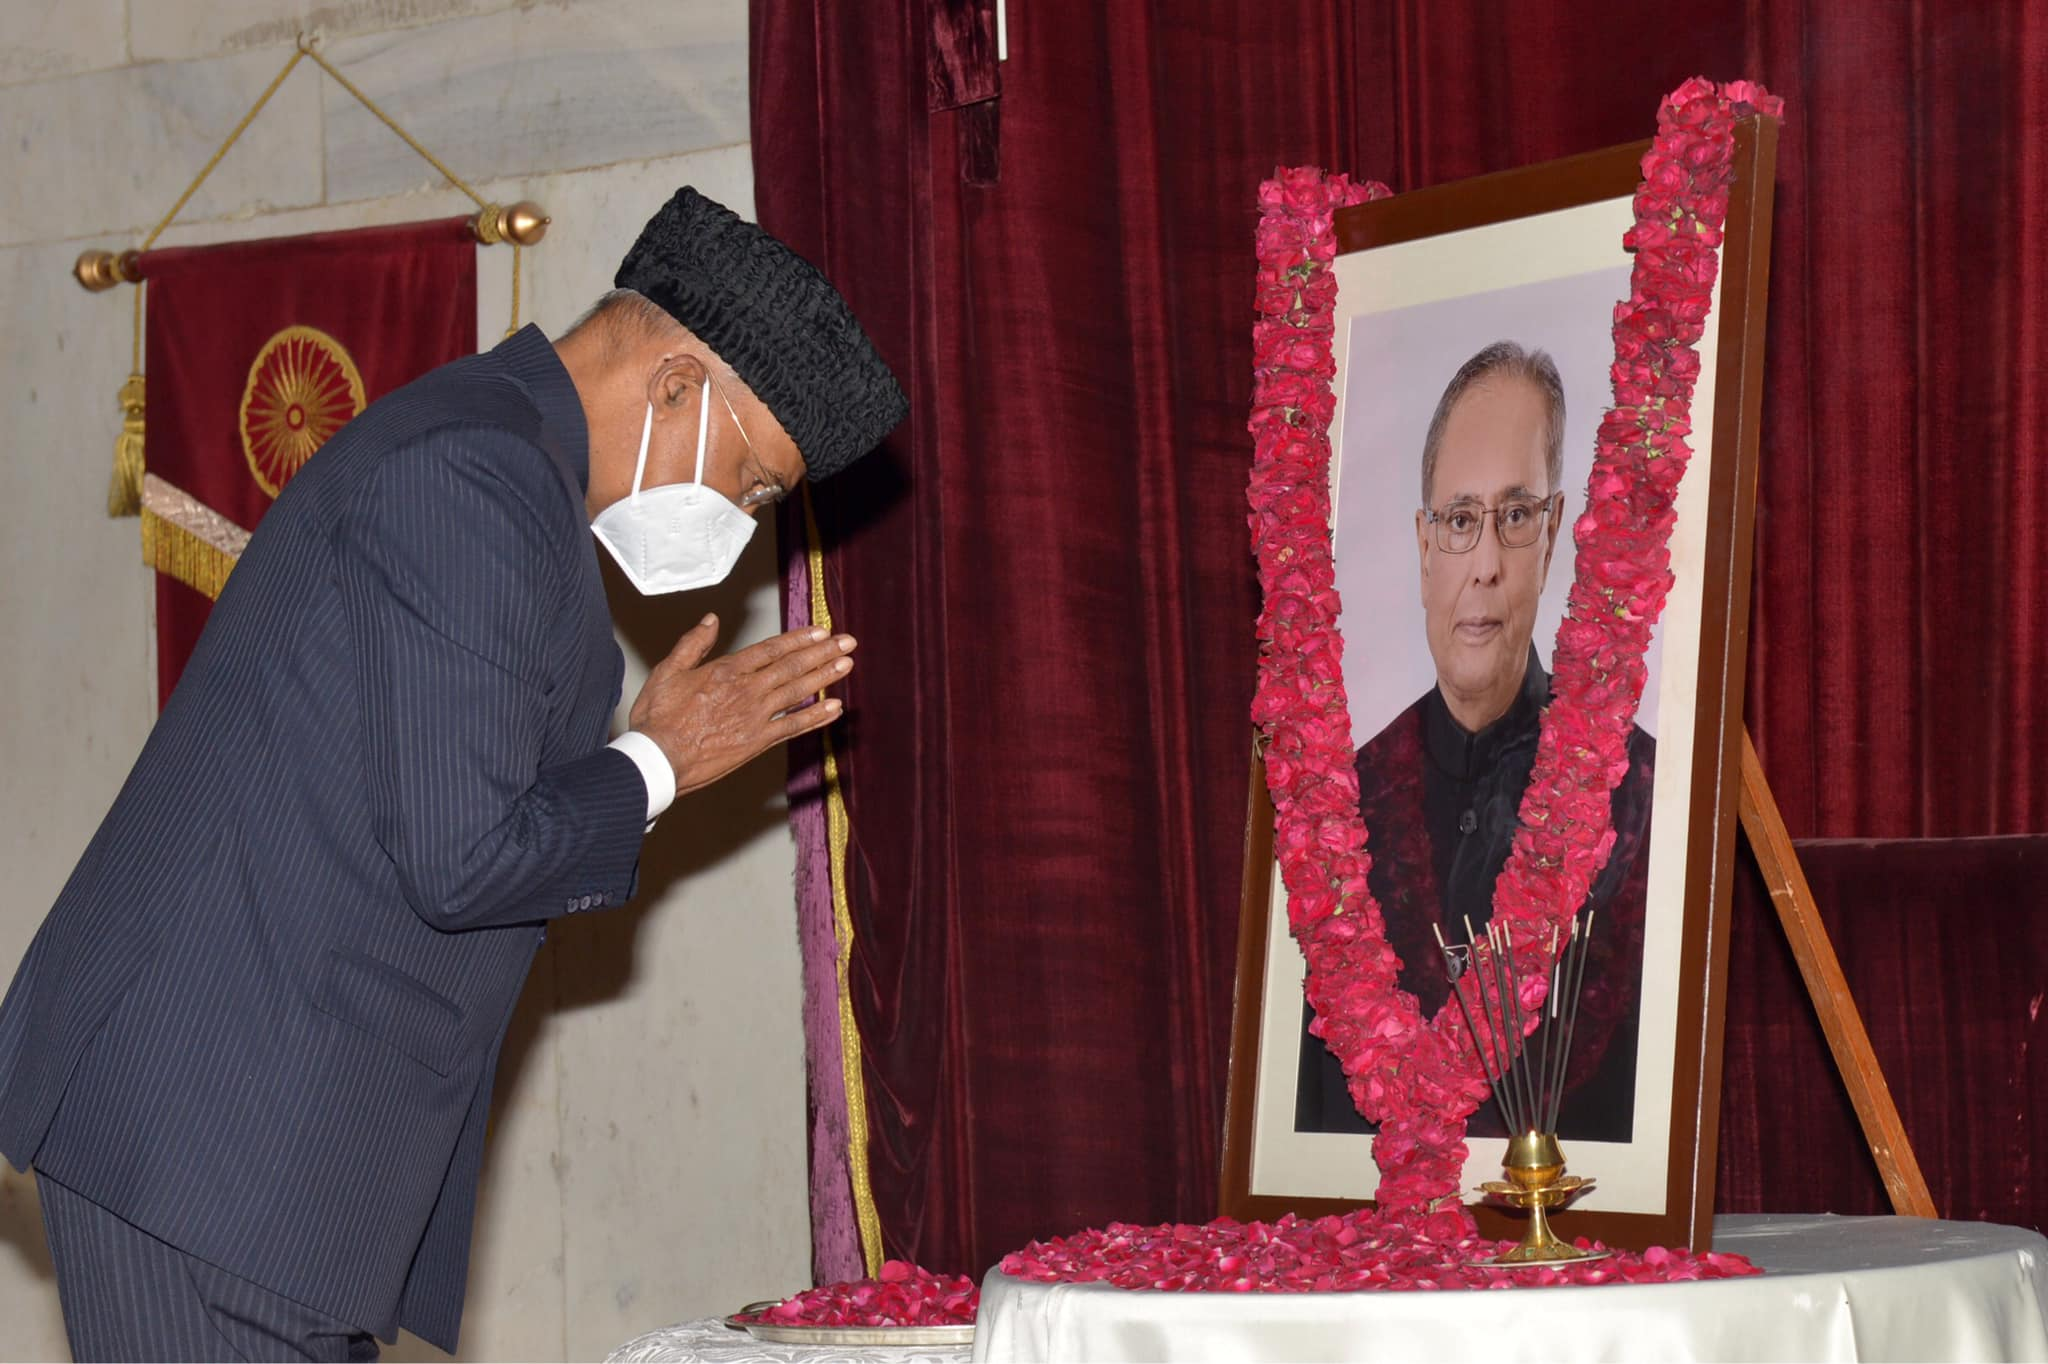 Ram Nath Kovind | Kovind | President of India | Governor of Bihar | 1994-2006 MP (Rajya Sabha) | Lawyer for 16 years | Personal Assistant of Prime Minister of India Morarji Desai | President of the BJP Dalit Morcha | National Spokesperson of the party | Advocate of bar Council | Central Government Advocate in the Delhi High Court | Advocate-on-record of the Supreme Court of India | Standing Counsel for the Central Government in the Supreme Court of India | RSS | BJP | Paraunkh | Kanpur Dehat | Uttar Pradesh | India | theLeadersaPage